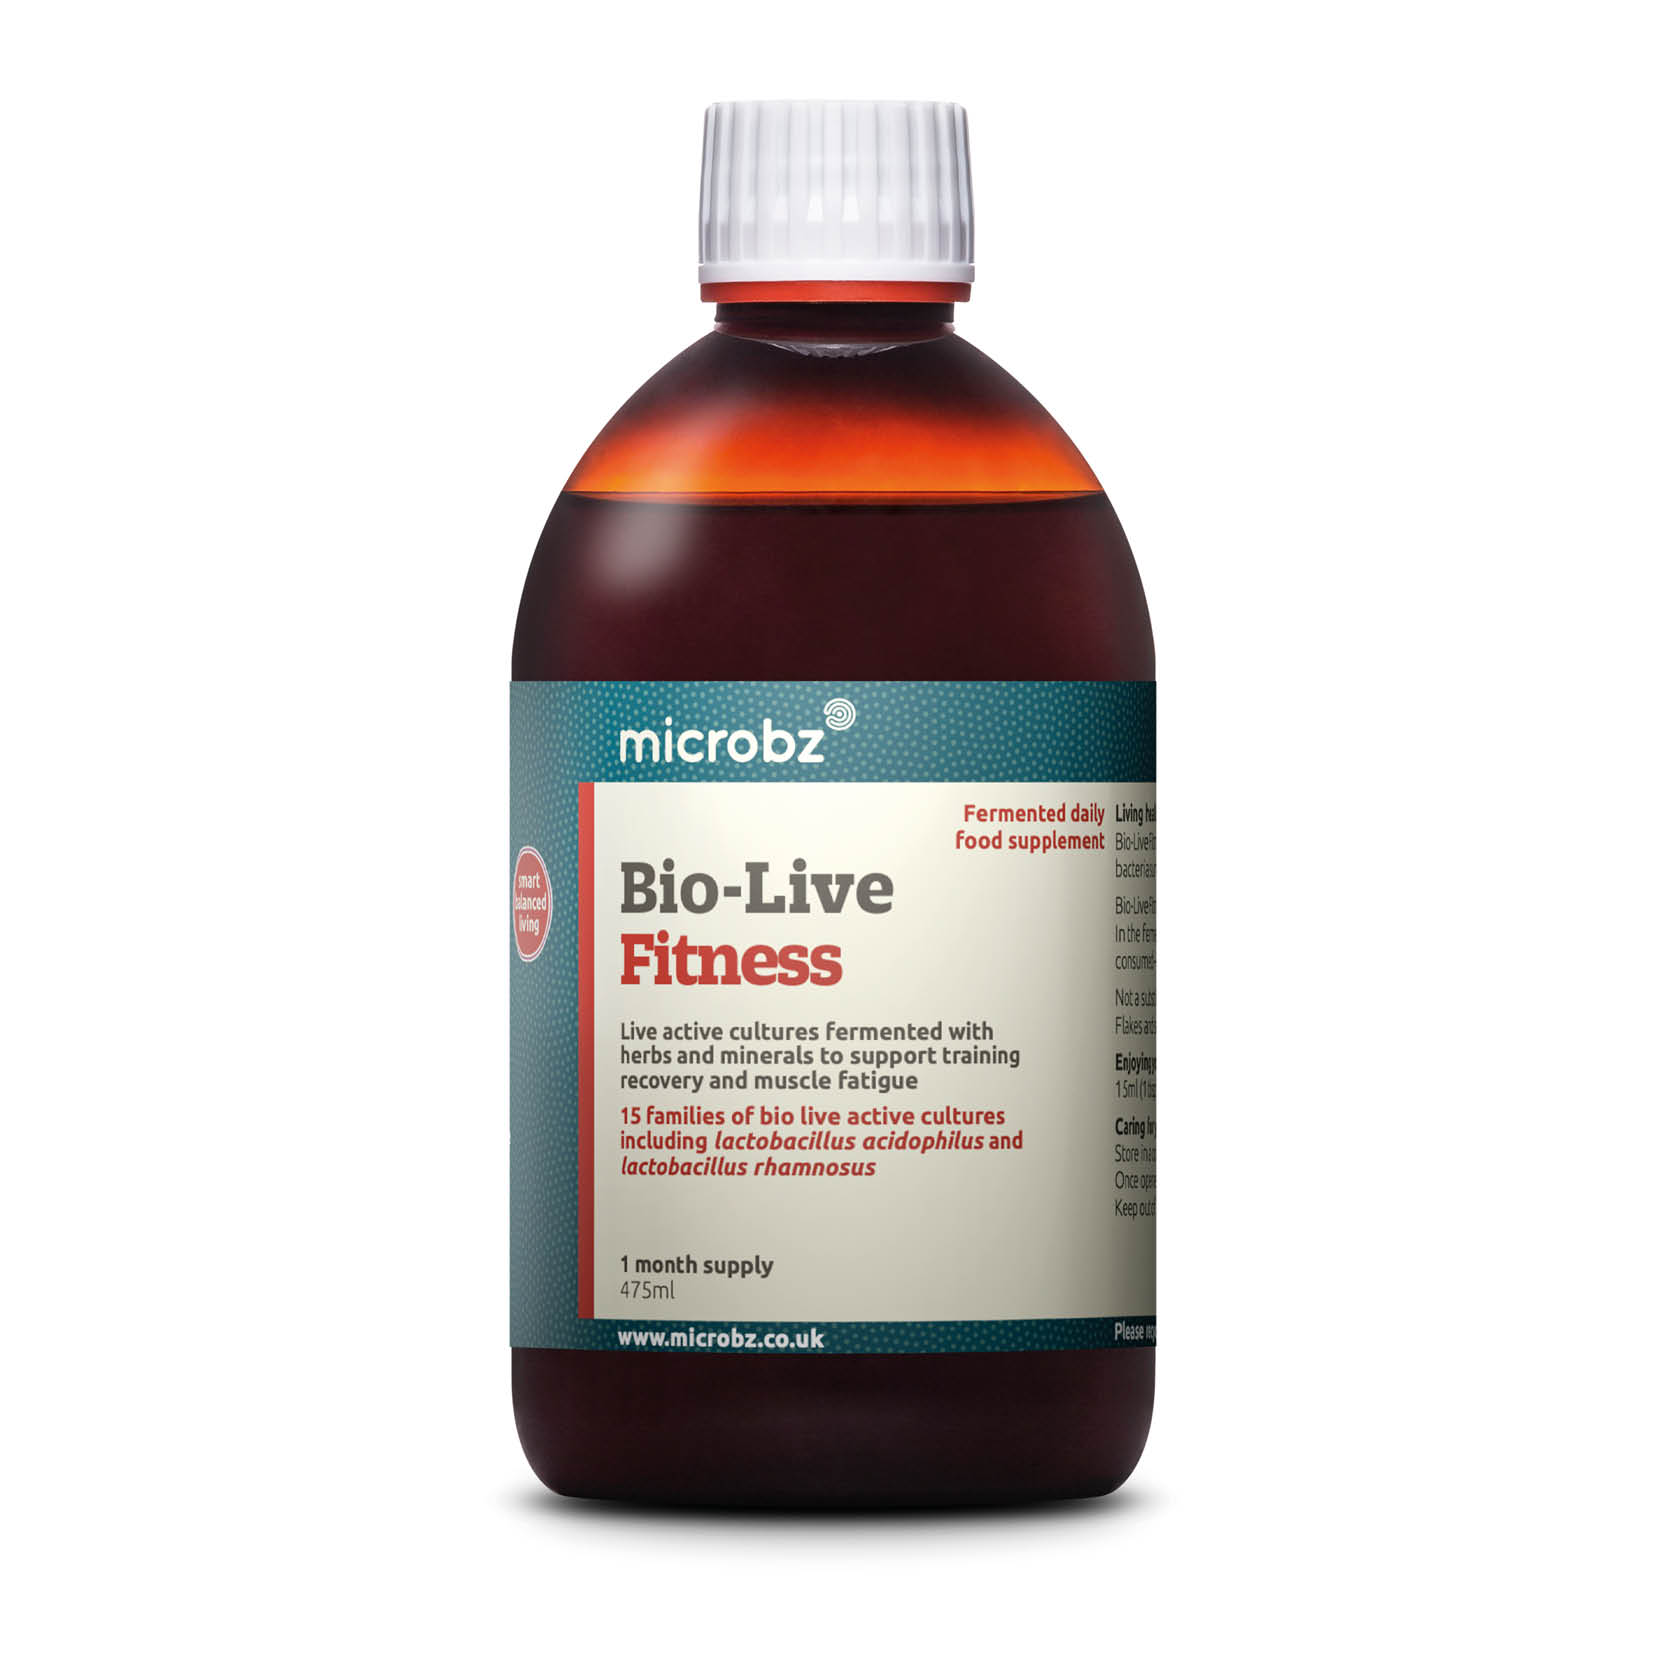 a product image of a bottle of Bio-Live Fitness